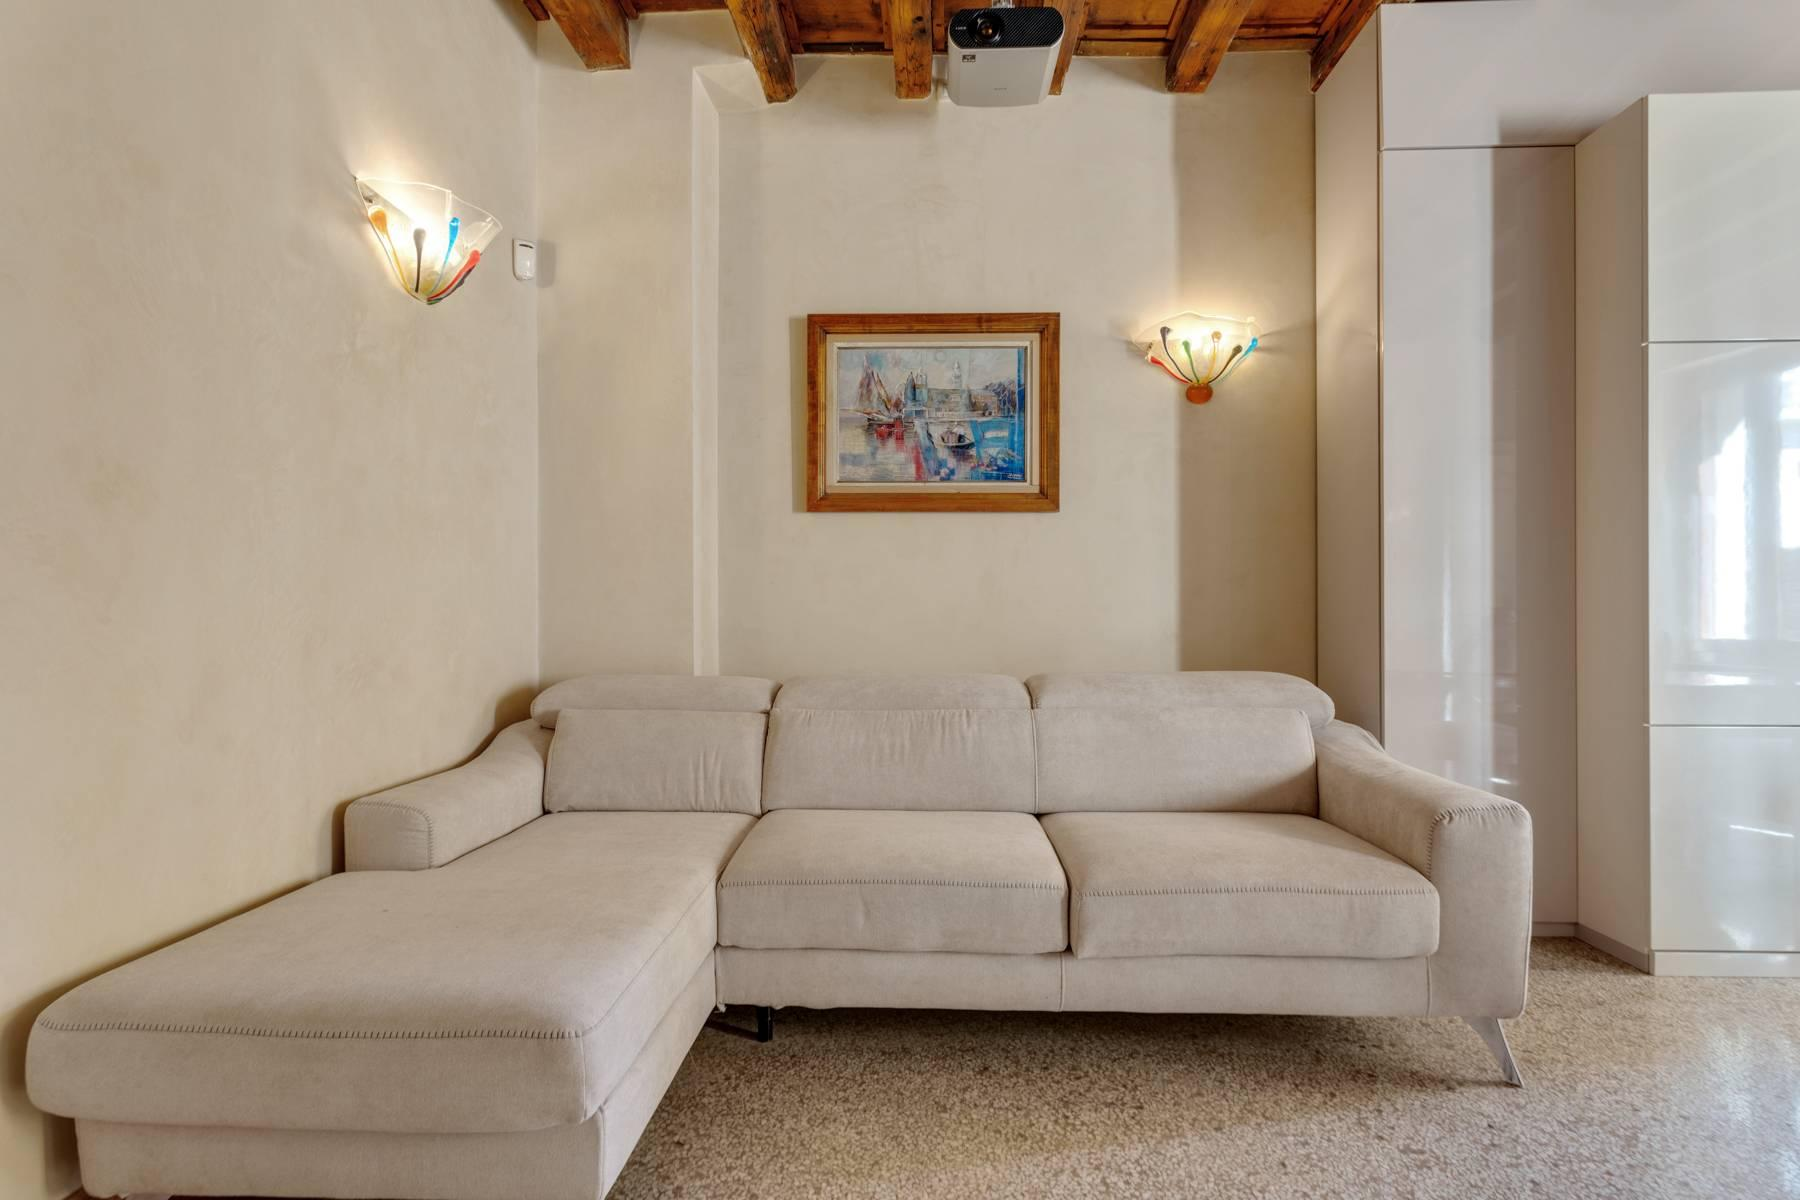 Exquisite apartment just few steps away from Piazza delle Erbe - 4